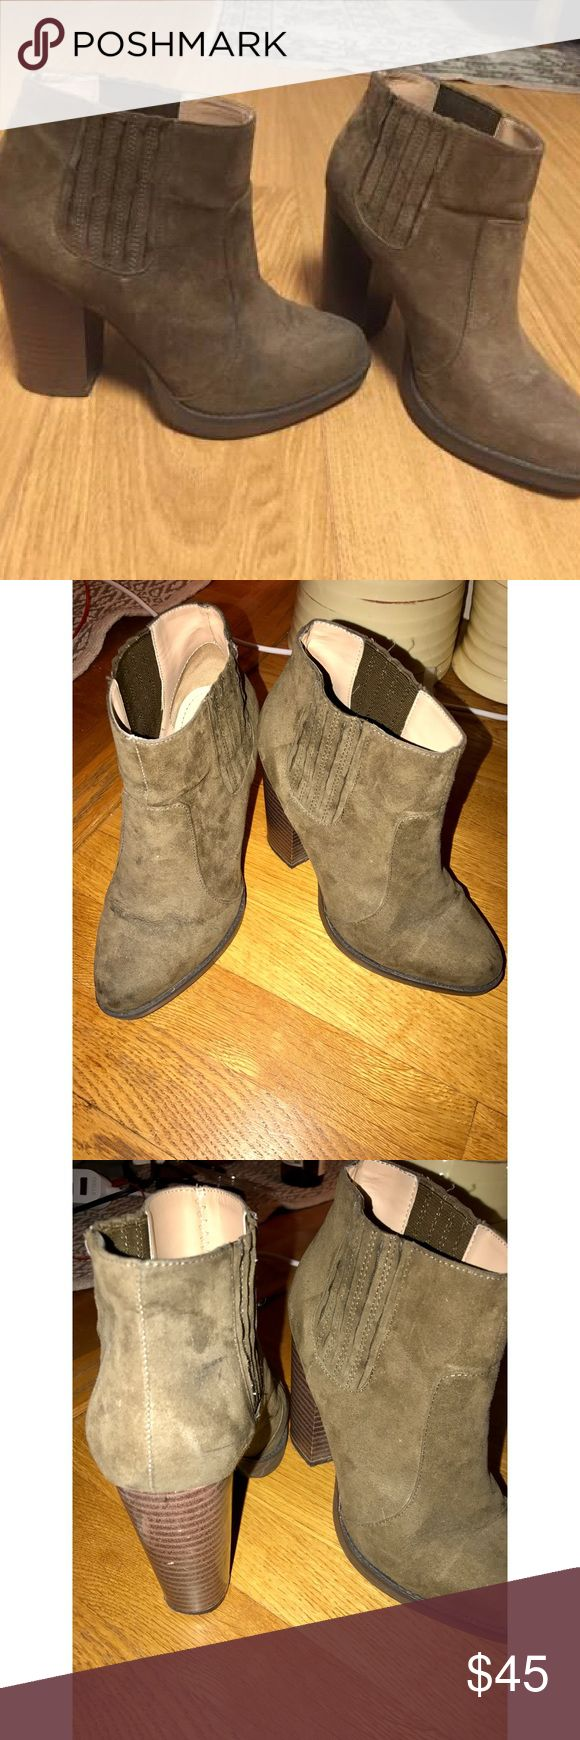 Zara olive heeled booties size 8 In Great Condition. Barely Worn Suede, Heeled Ara Booties, Great To Wear To Work Or Out For Date Night. Look Great With Jeans, Dresses, Skirts! SIZE 39 US SIZE 8 (based off of Zara's sizing on website) Zara Shoes Ankle Boots & Booties